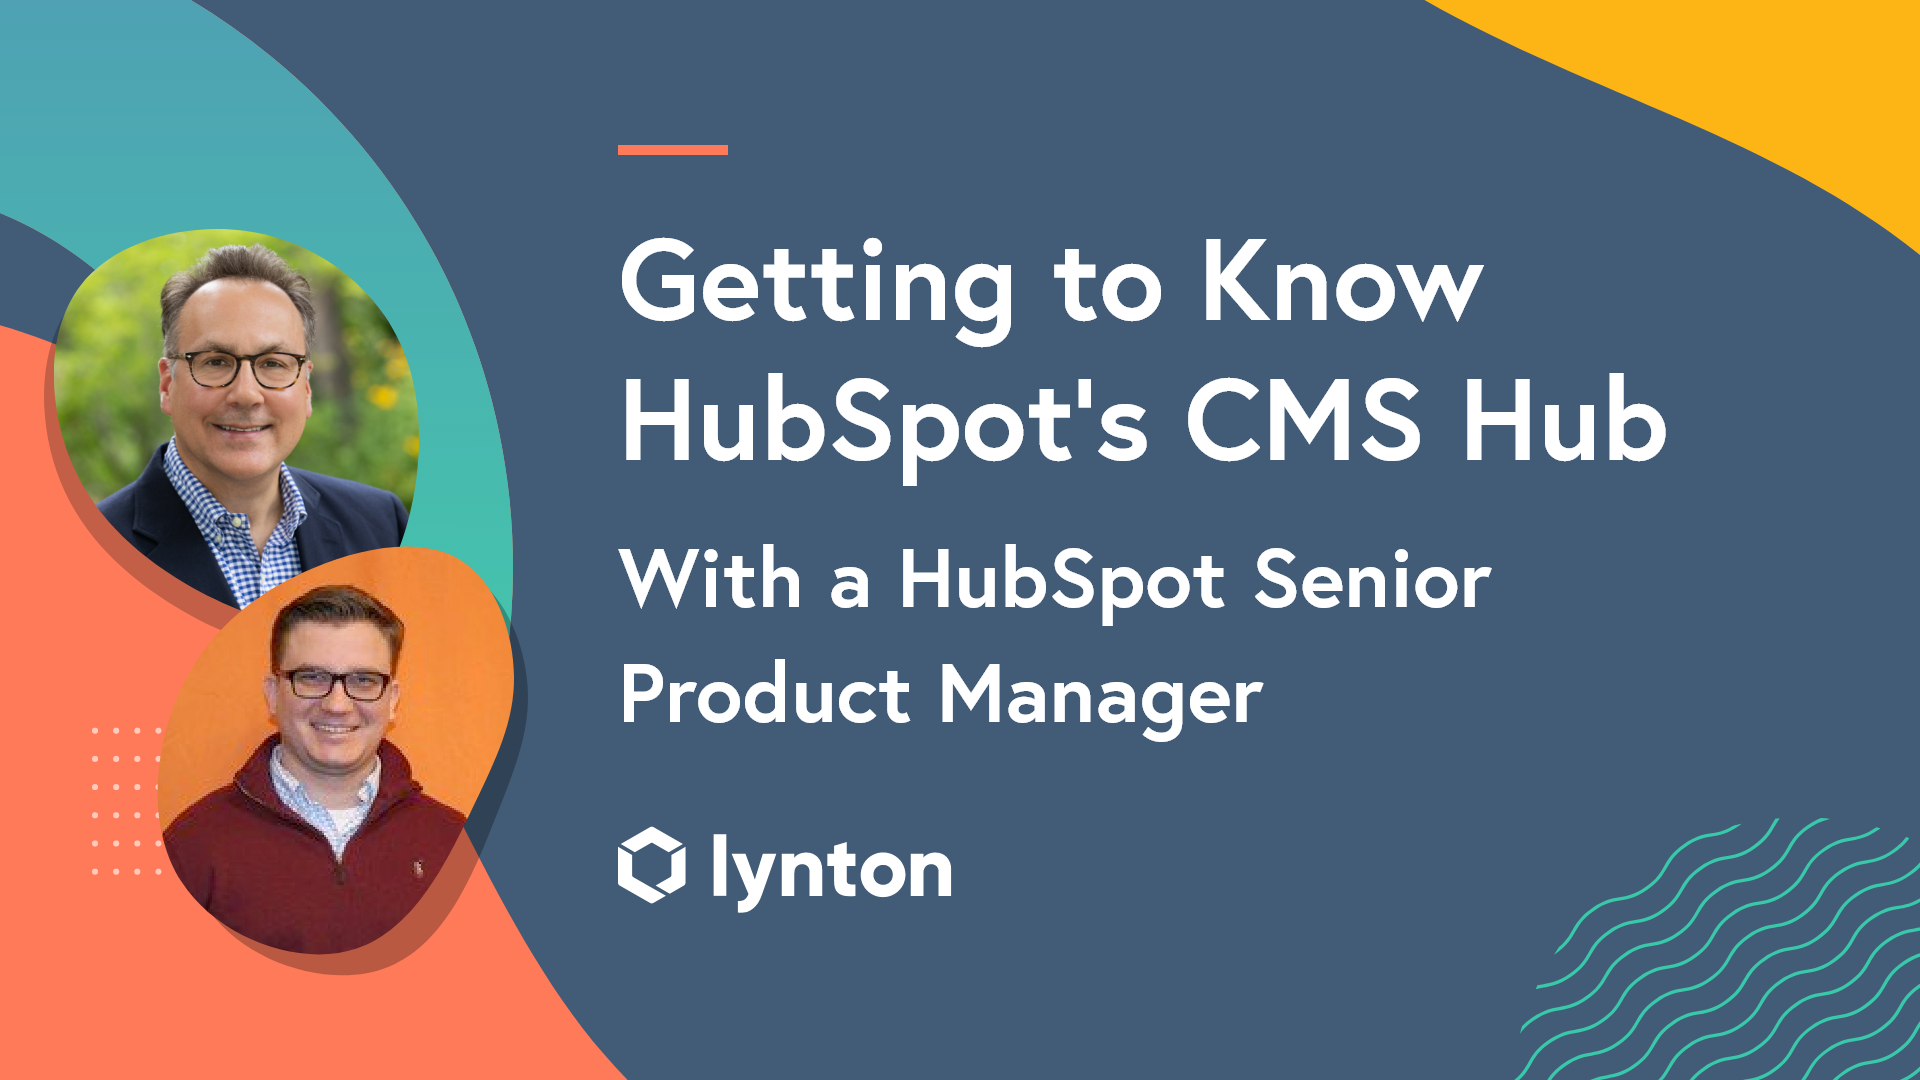 Getting to Know HubSpot CMS Hub with a HubSpot Senior Product Manager